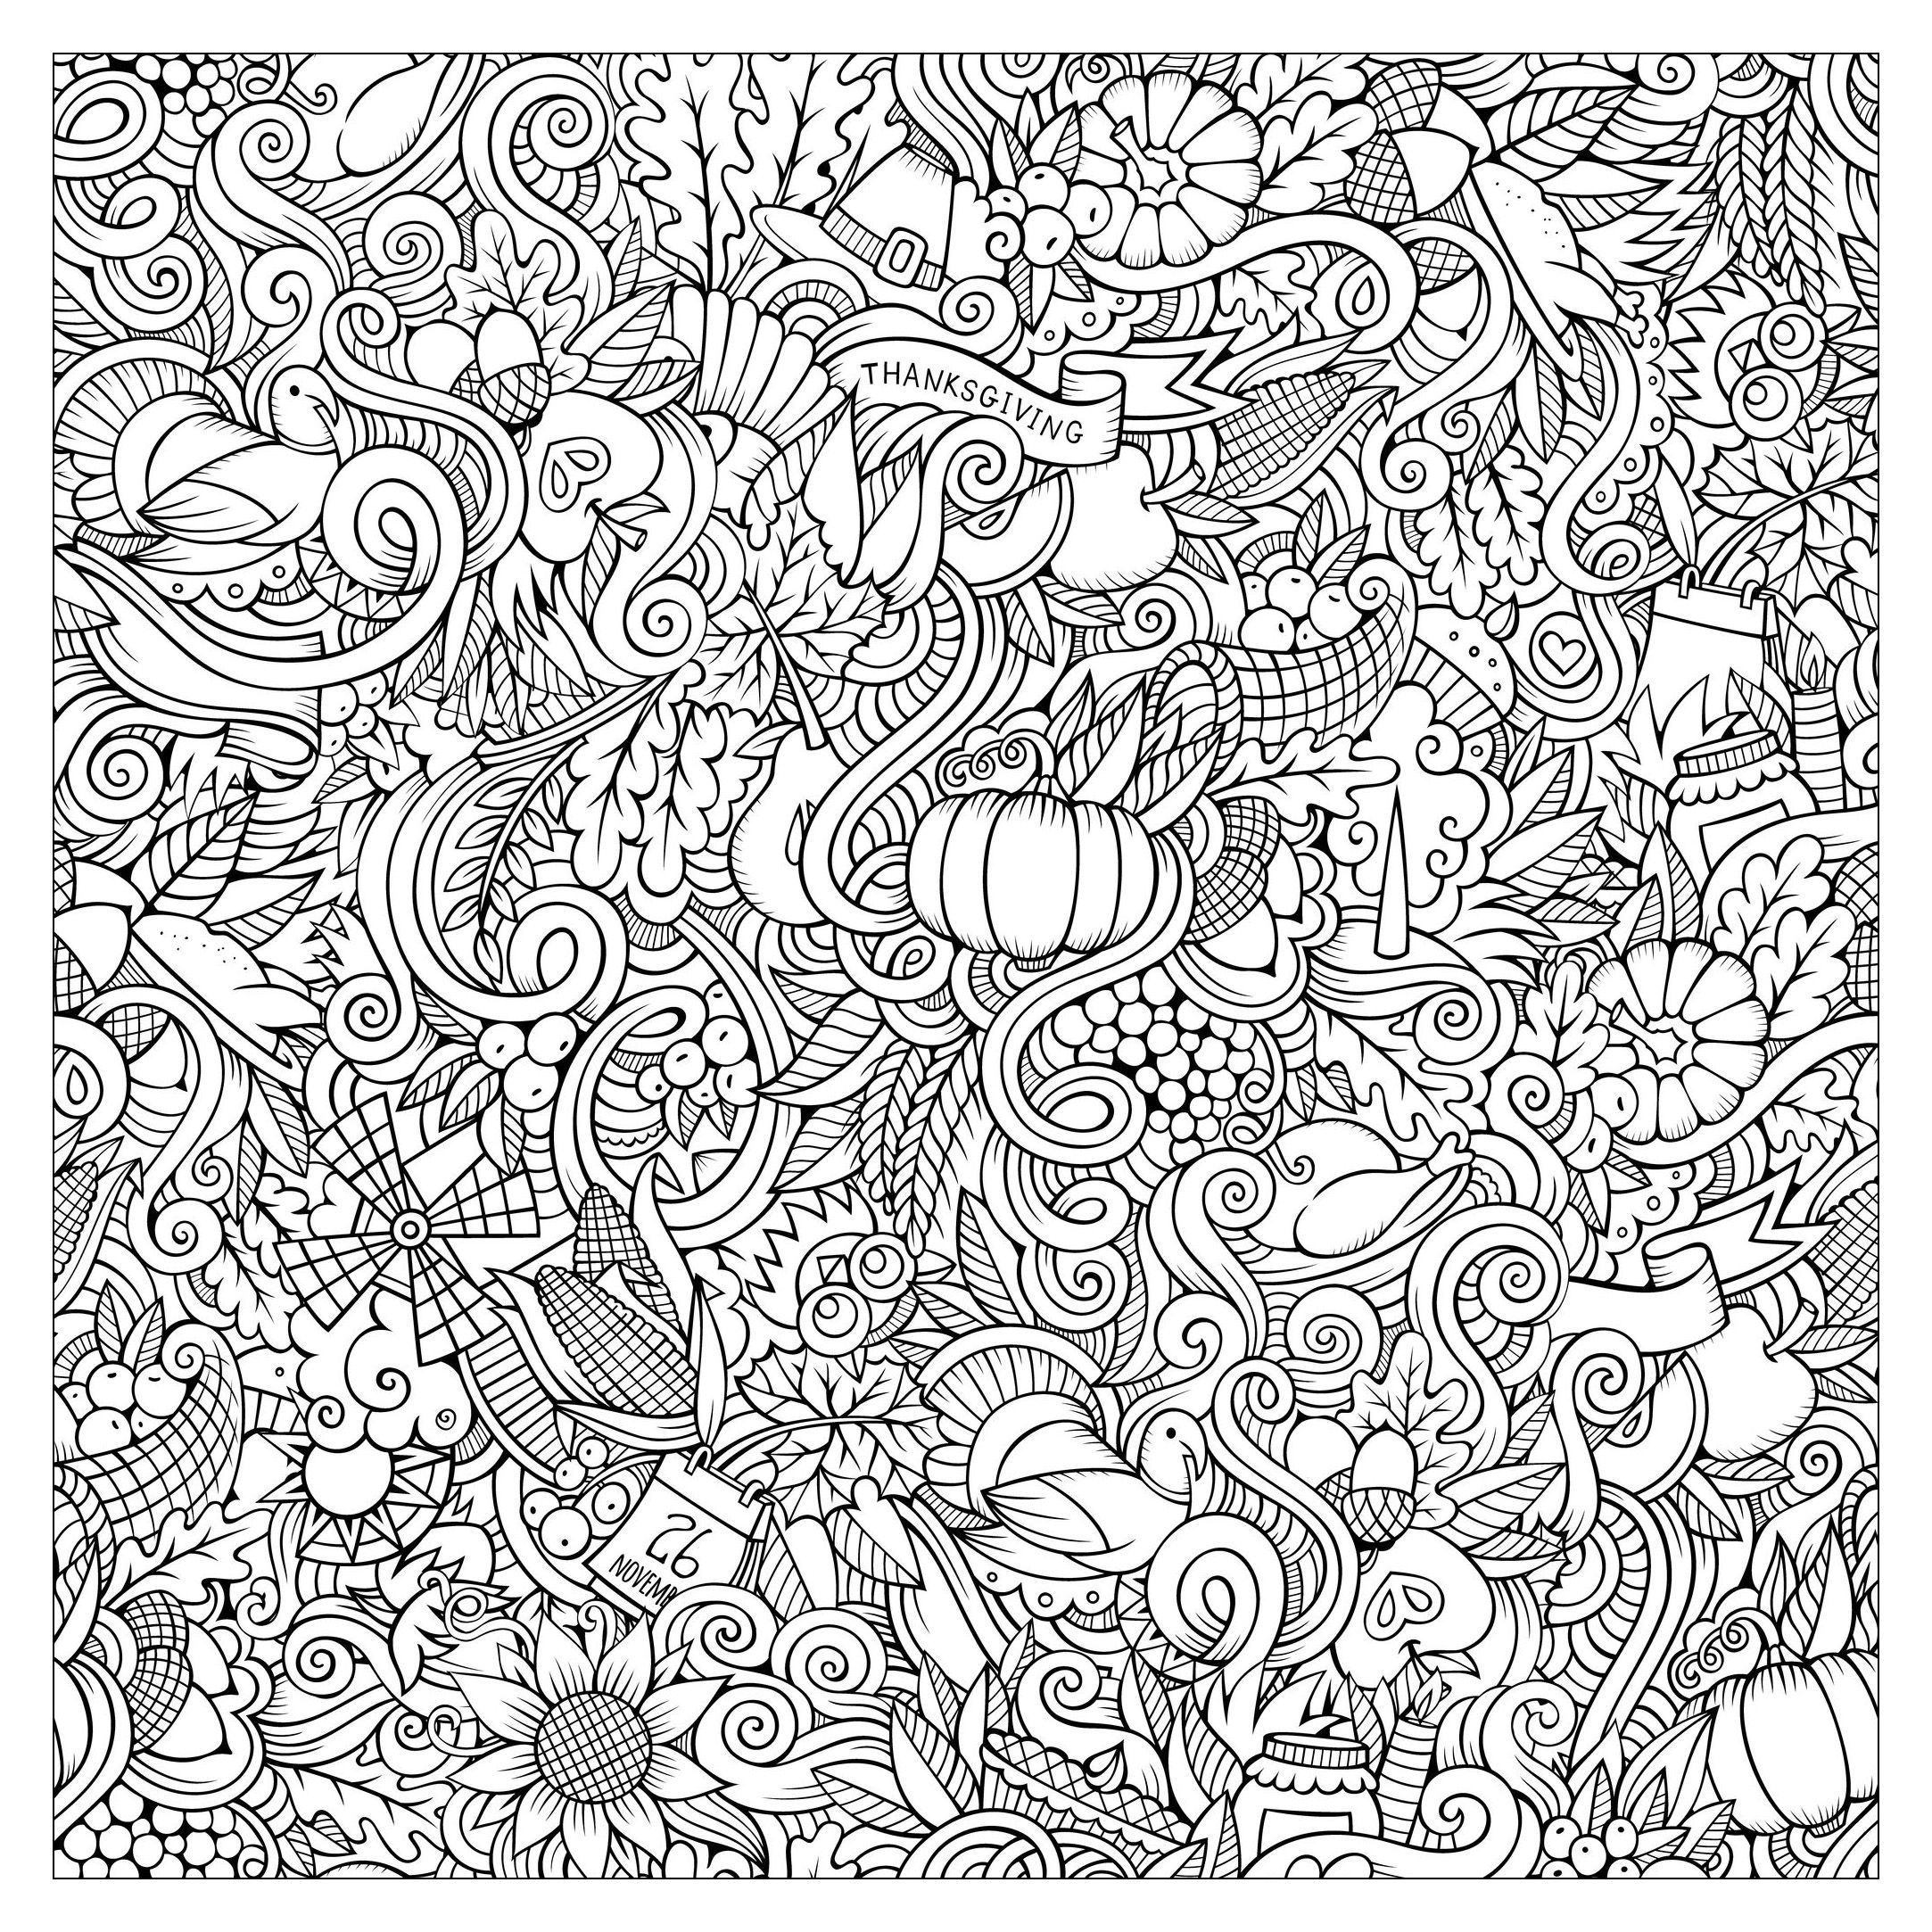 Wild Turkey Coloring Pages Gallery